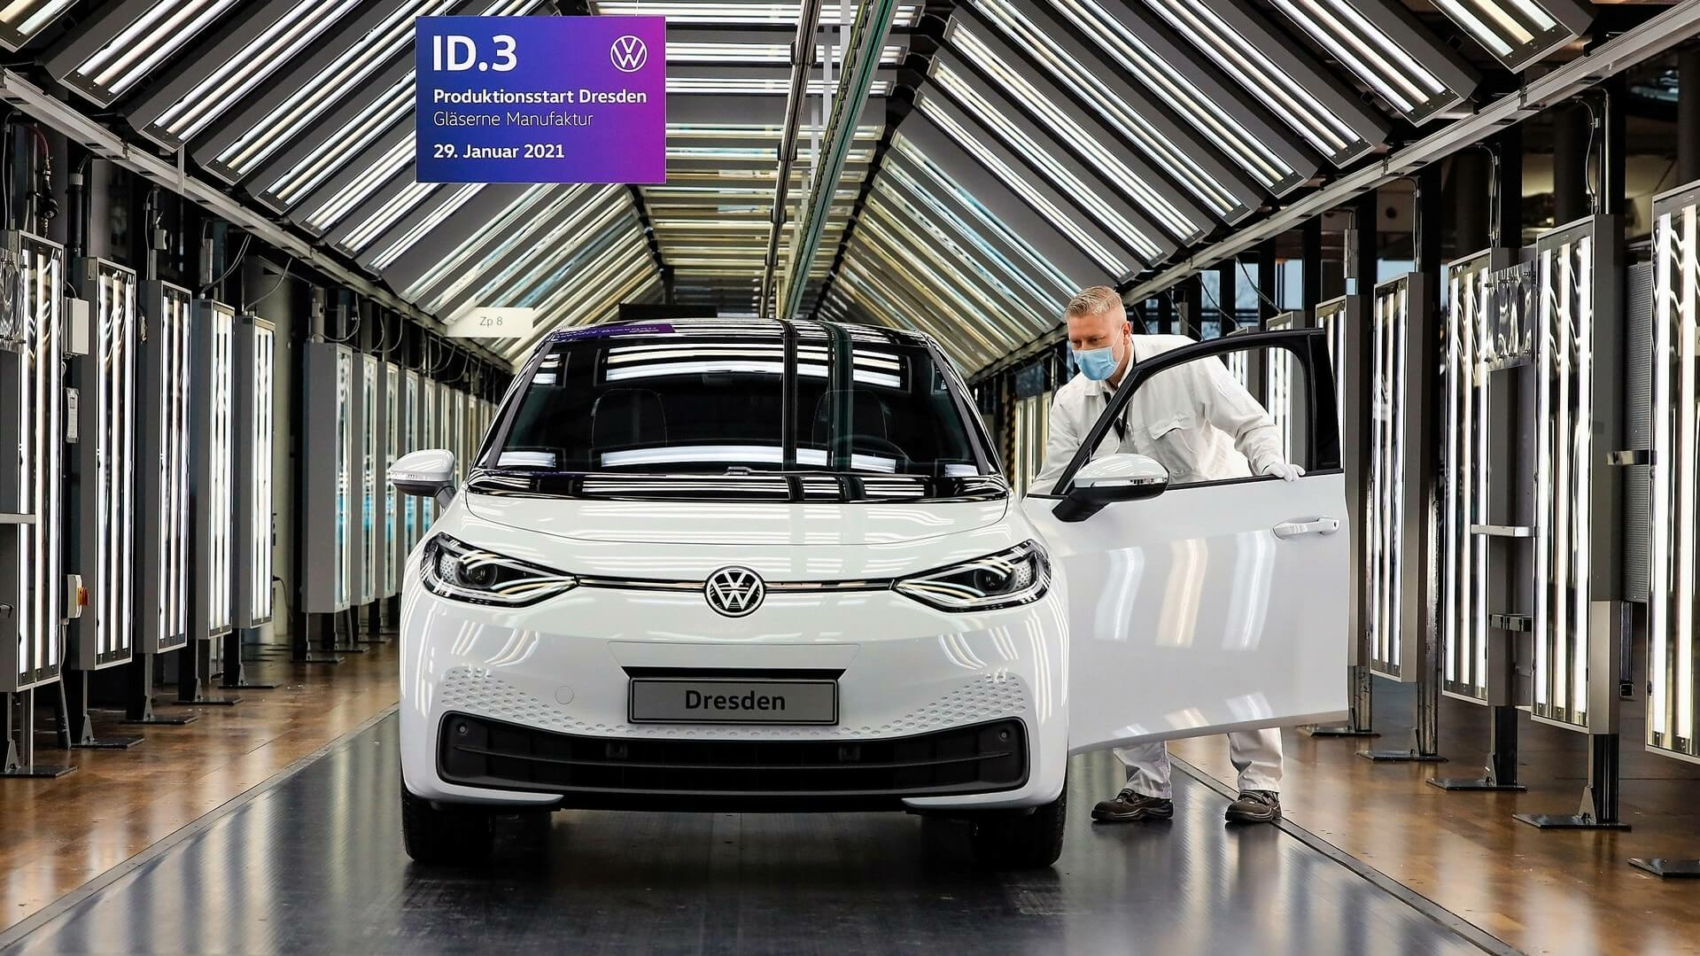 VW ID.3 enters series production at Dresden plant